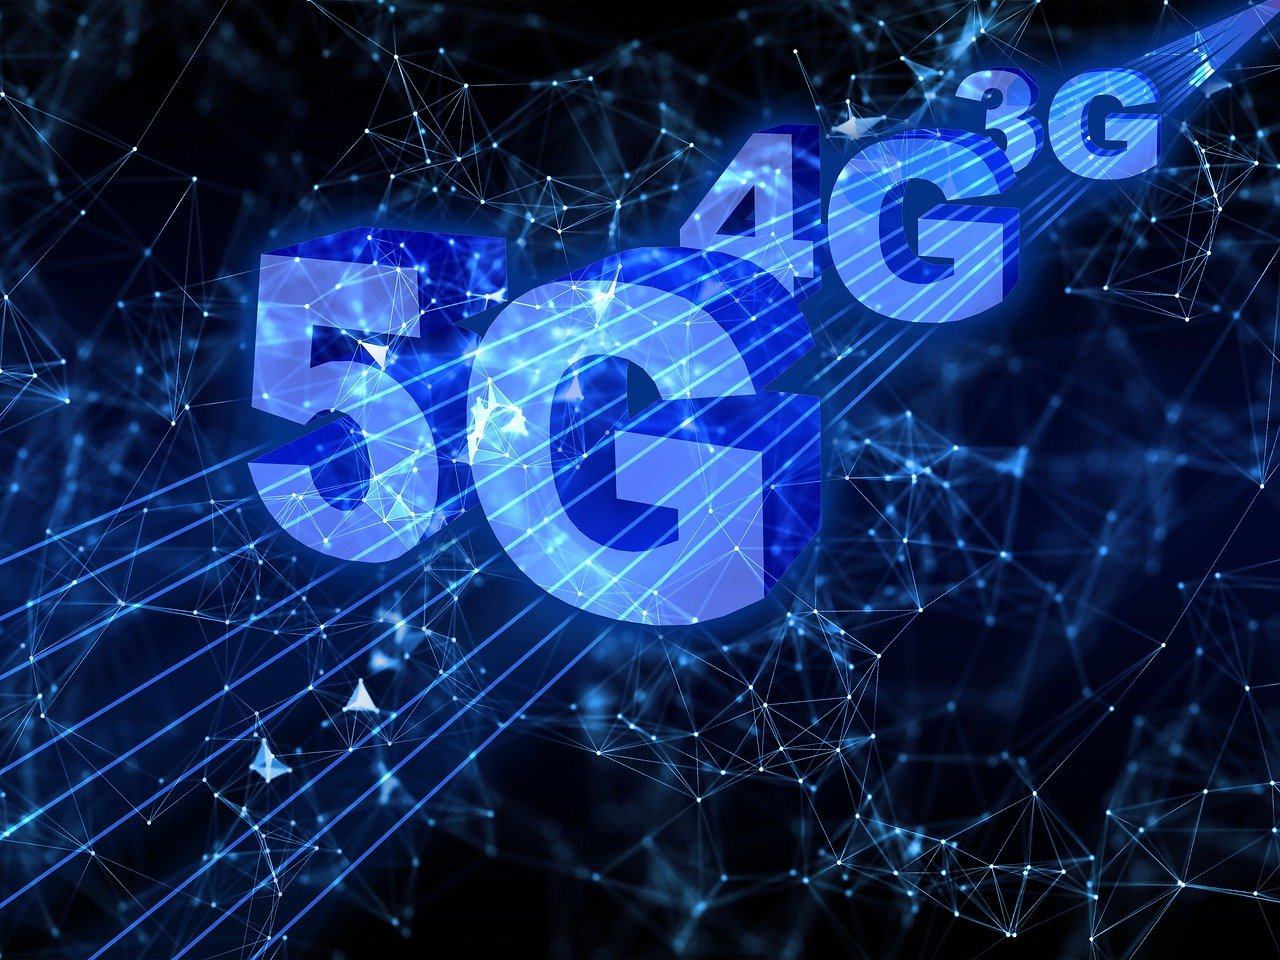 5G Coverage Expanding In Hungary As Mobile Data Demand Rises